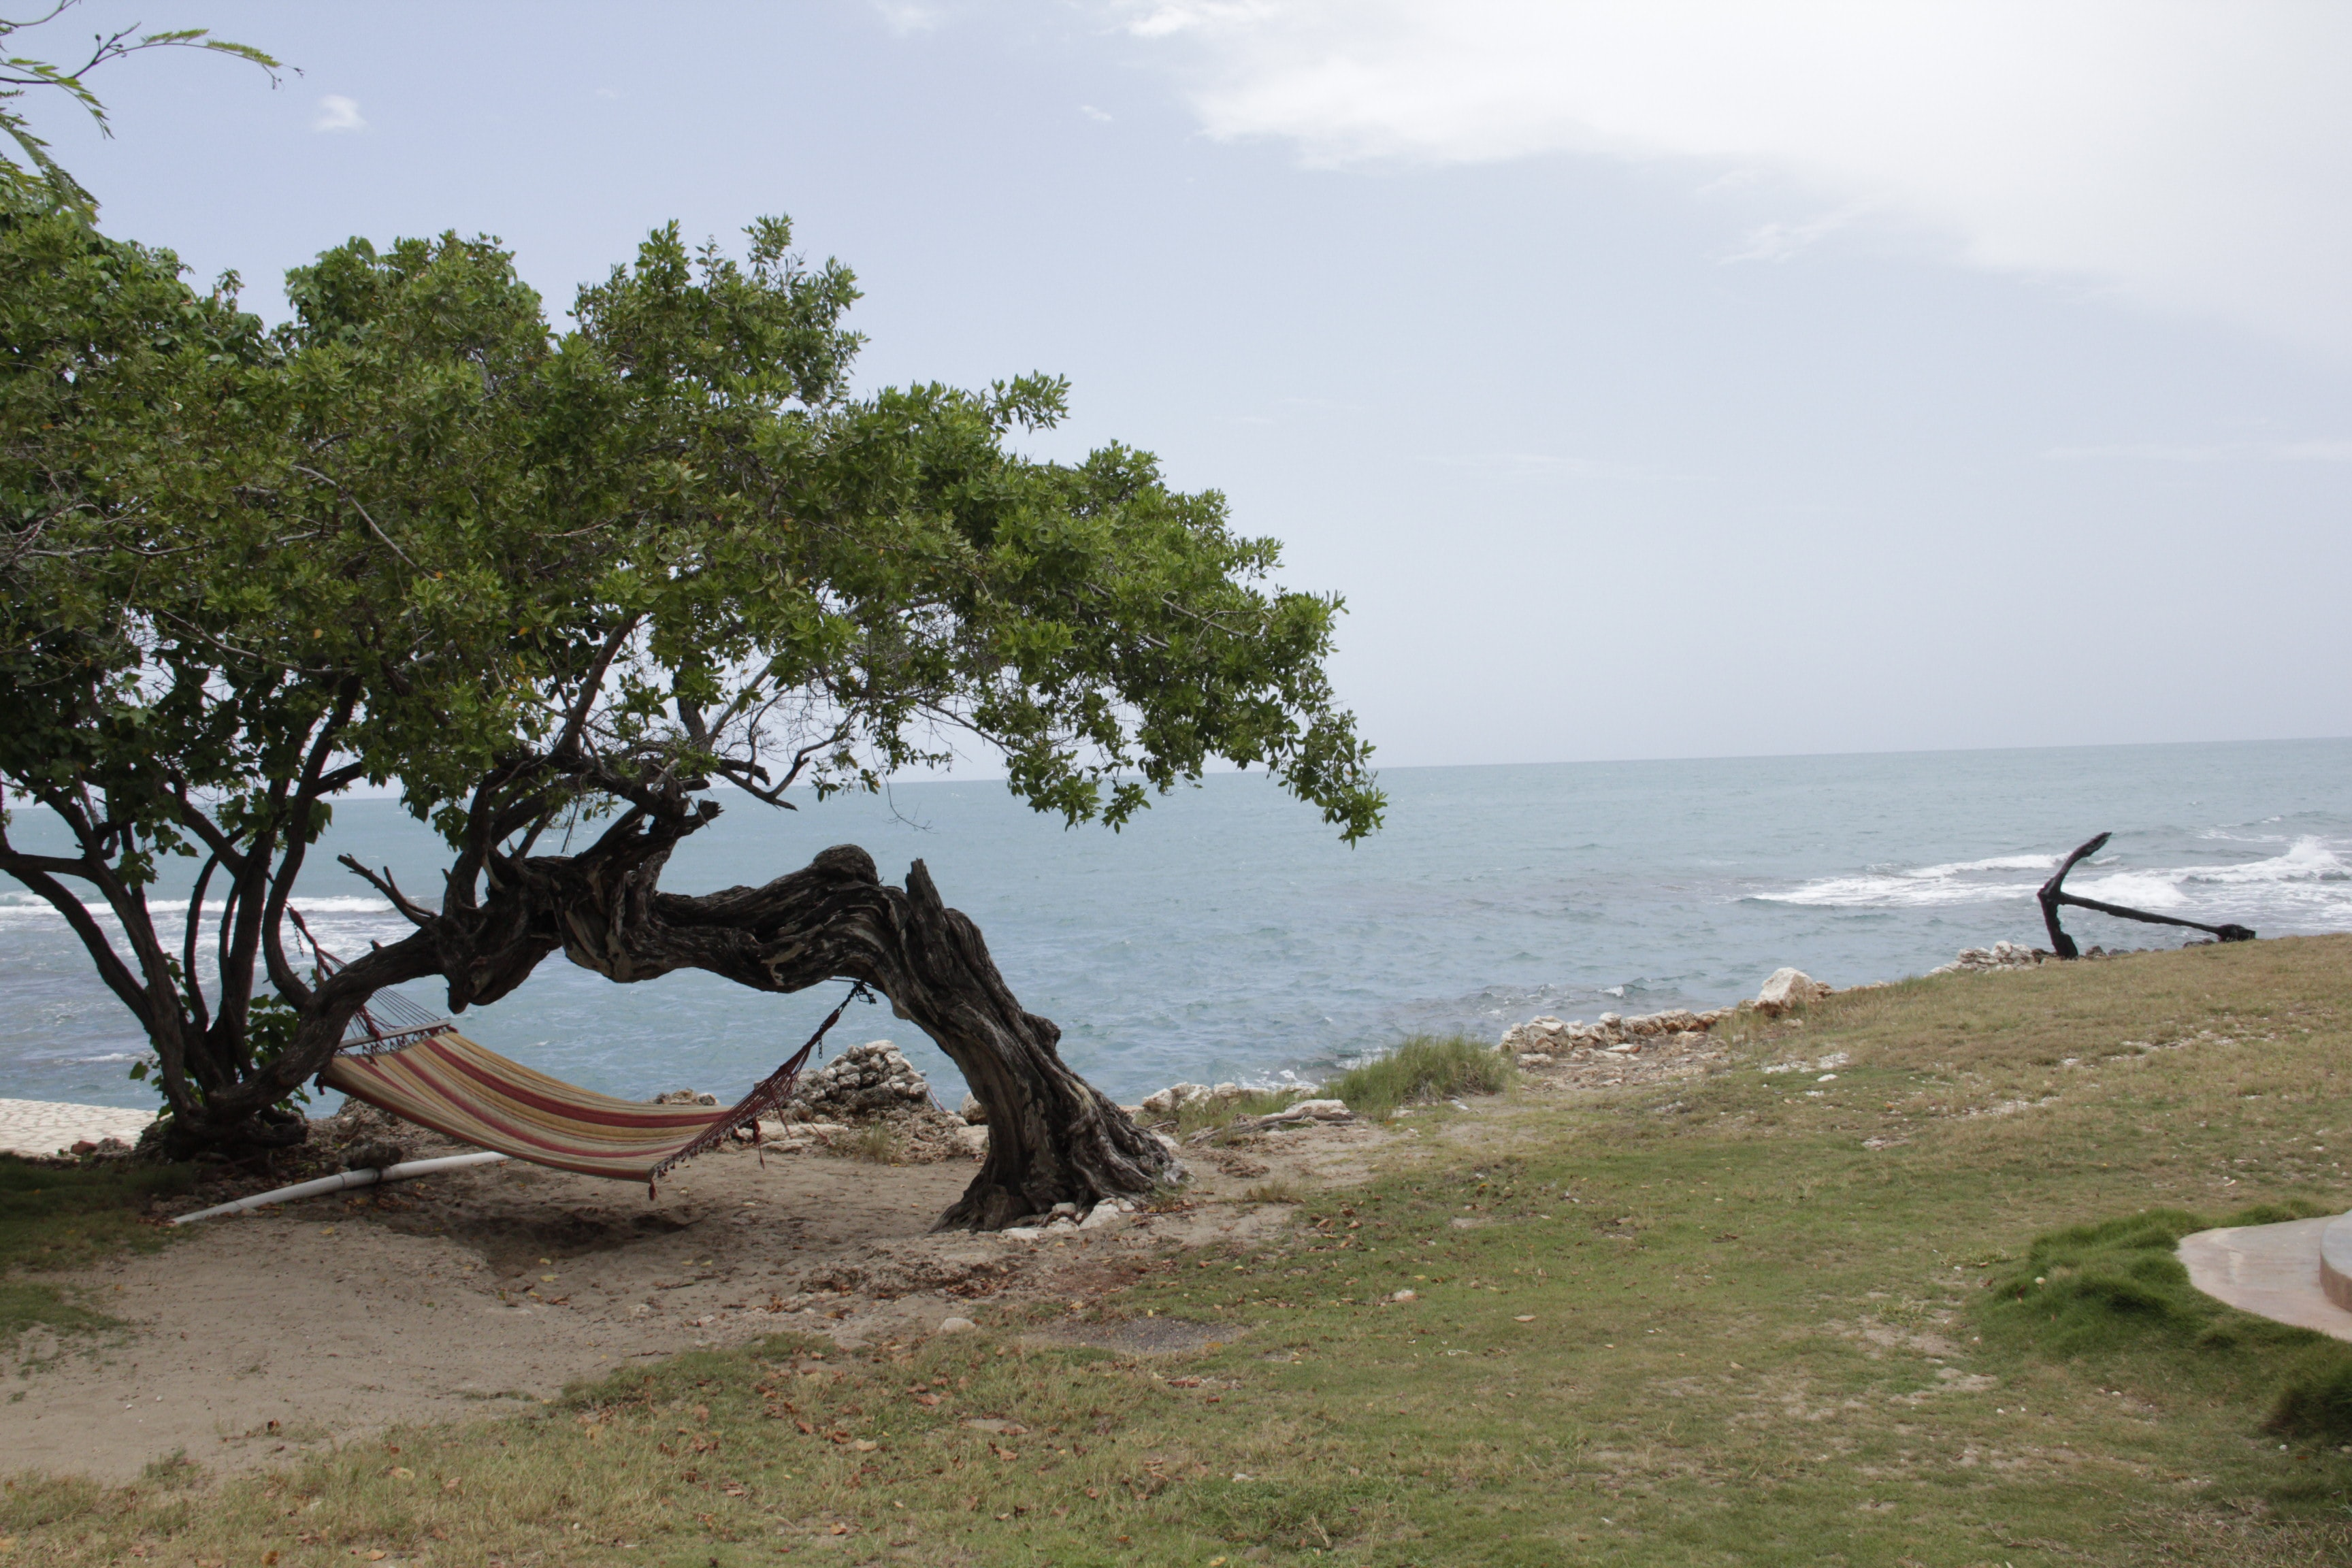 brown hammock hanging on trees near seashore during daytime